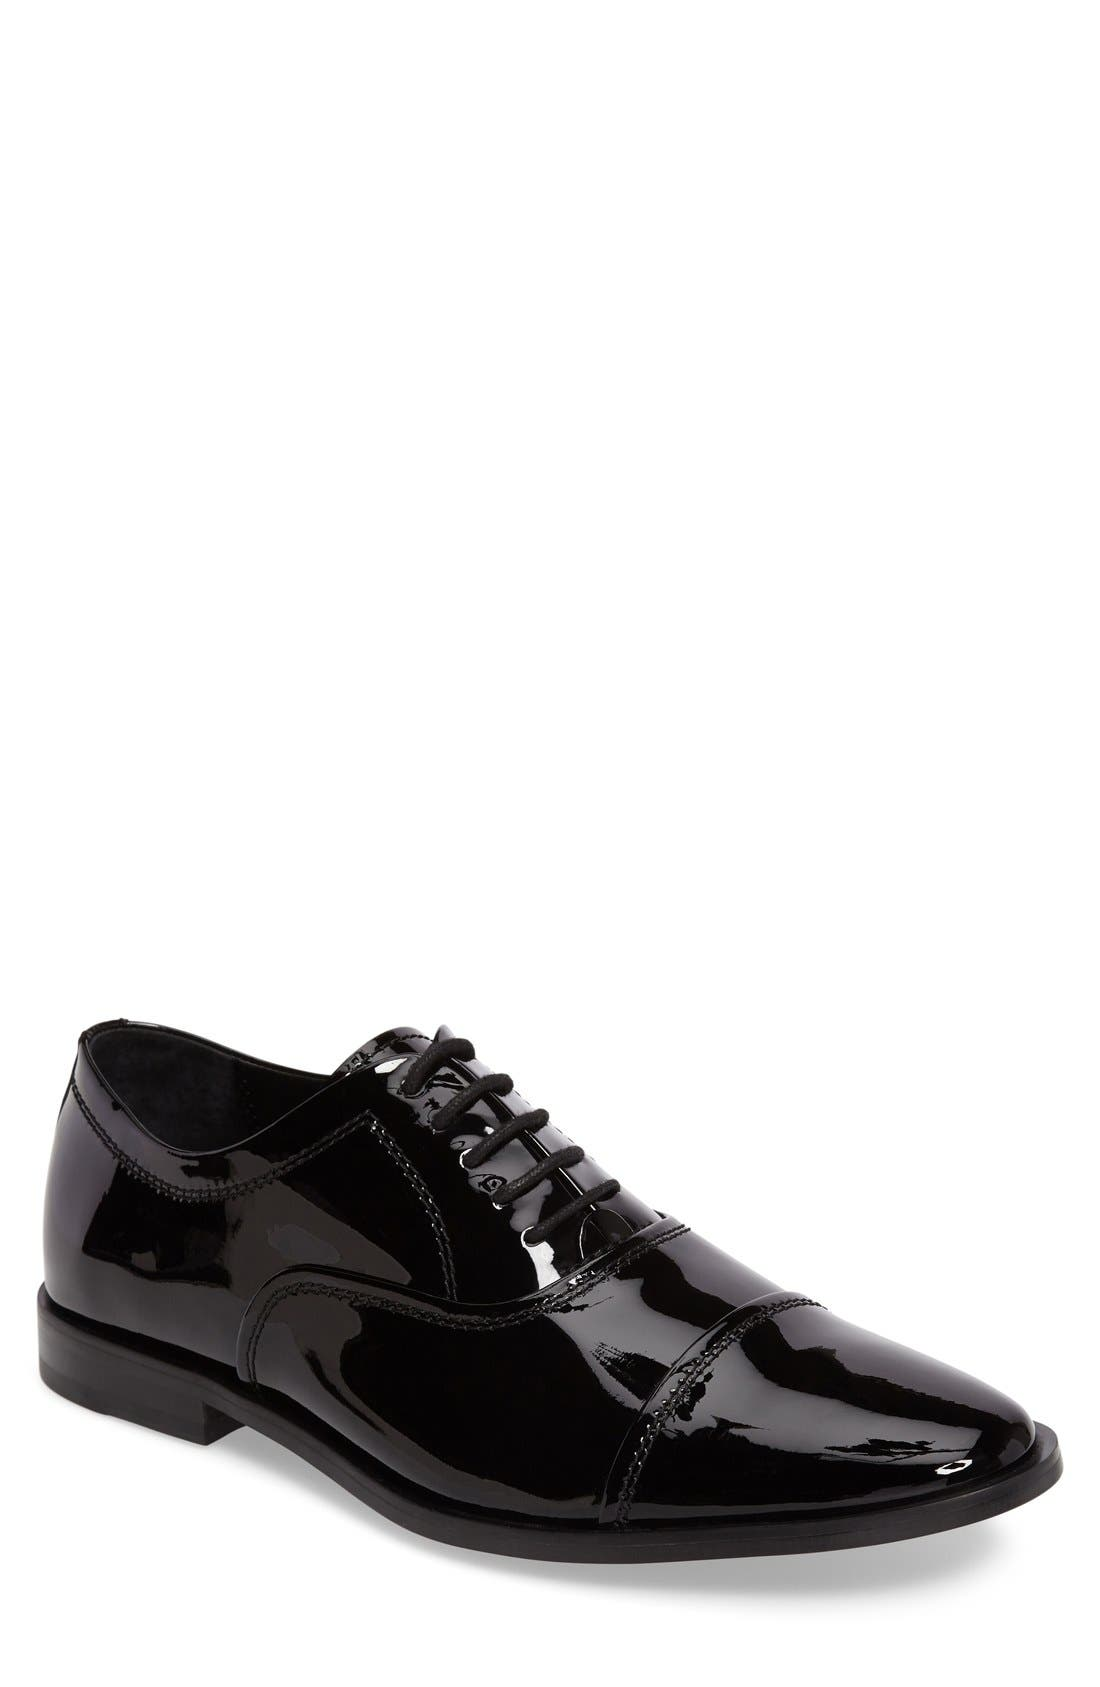 'Nino' Cap Toe Oxford,                         Main,                         color, Black Patent Leather